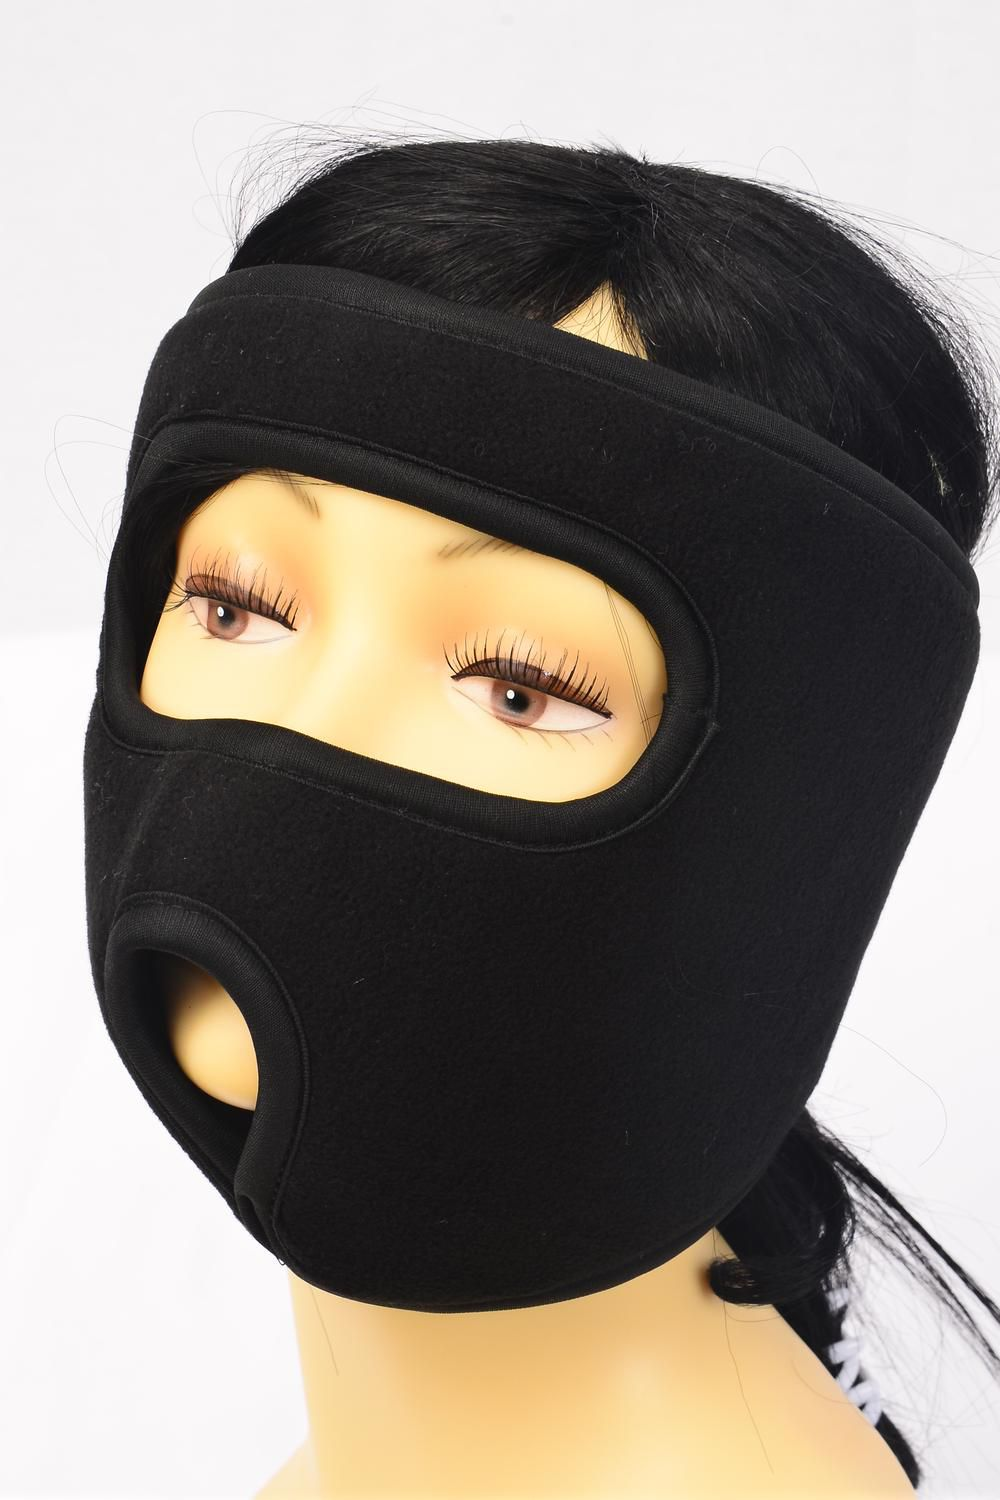 Fleece Mask Black Heavy Weight/DZ **Black**Hang Tag  With OPP Bag & UPC Code